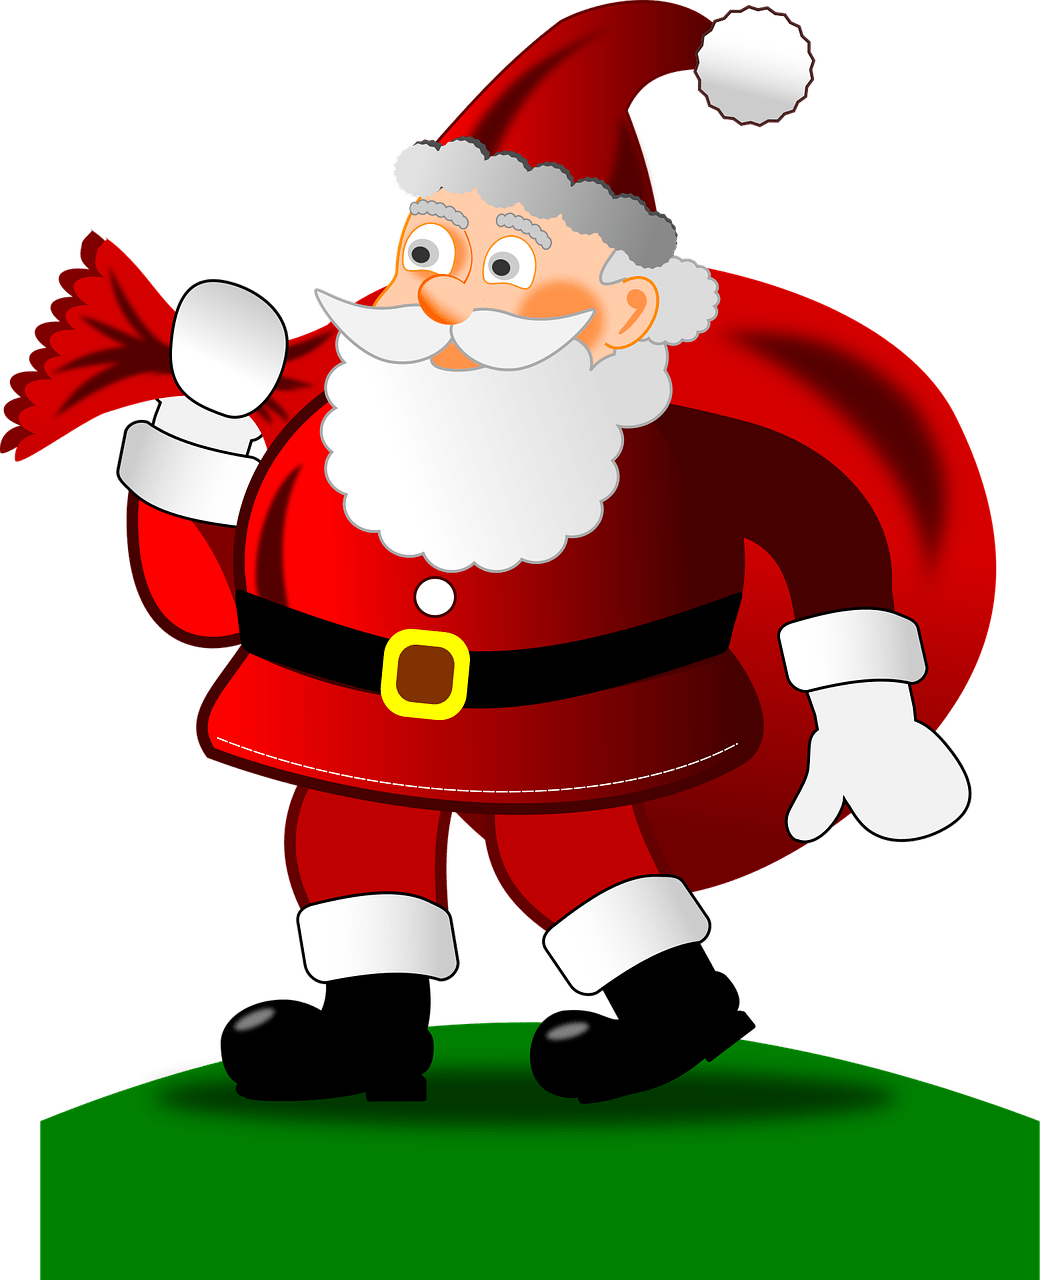 santa claus wallpaper phone 2